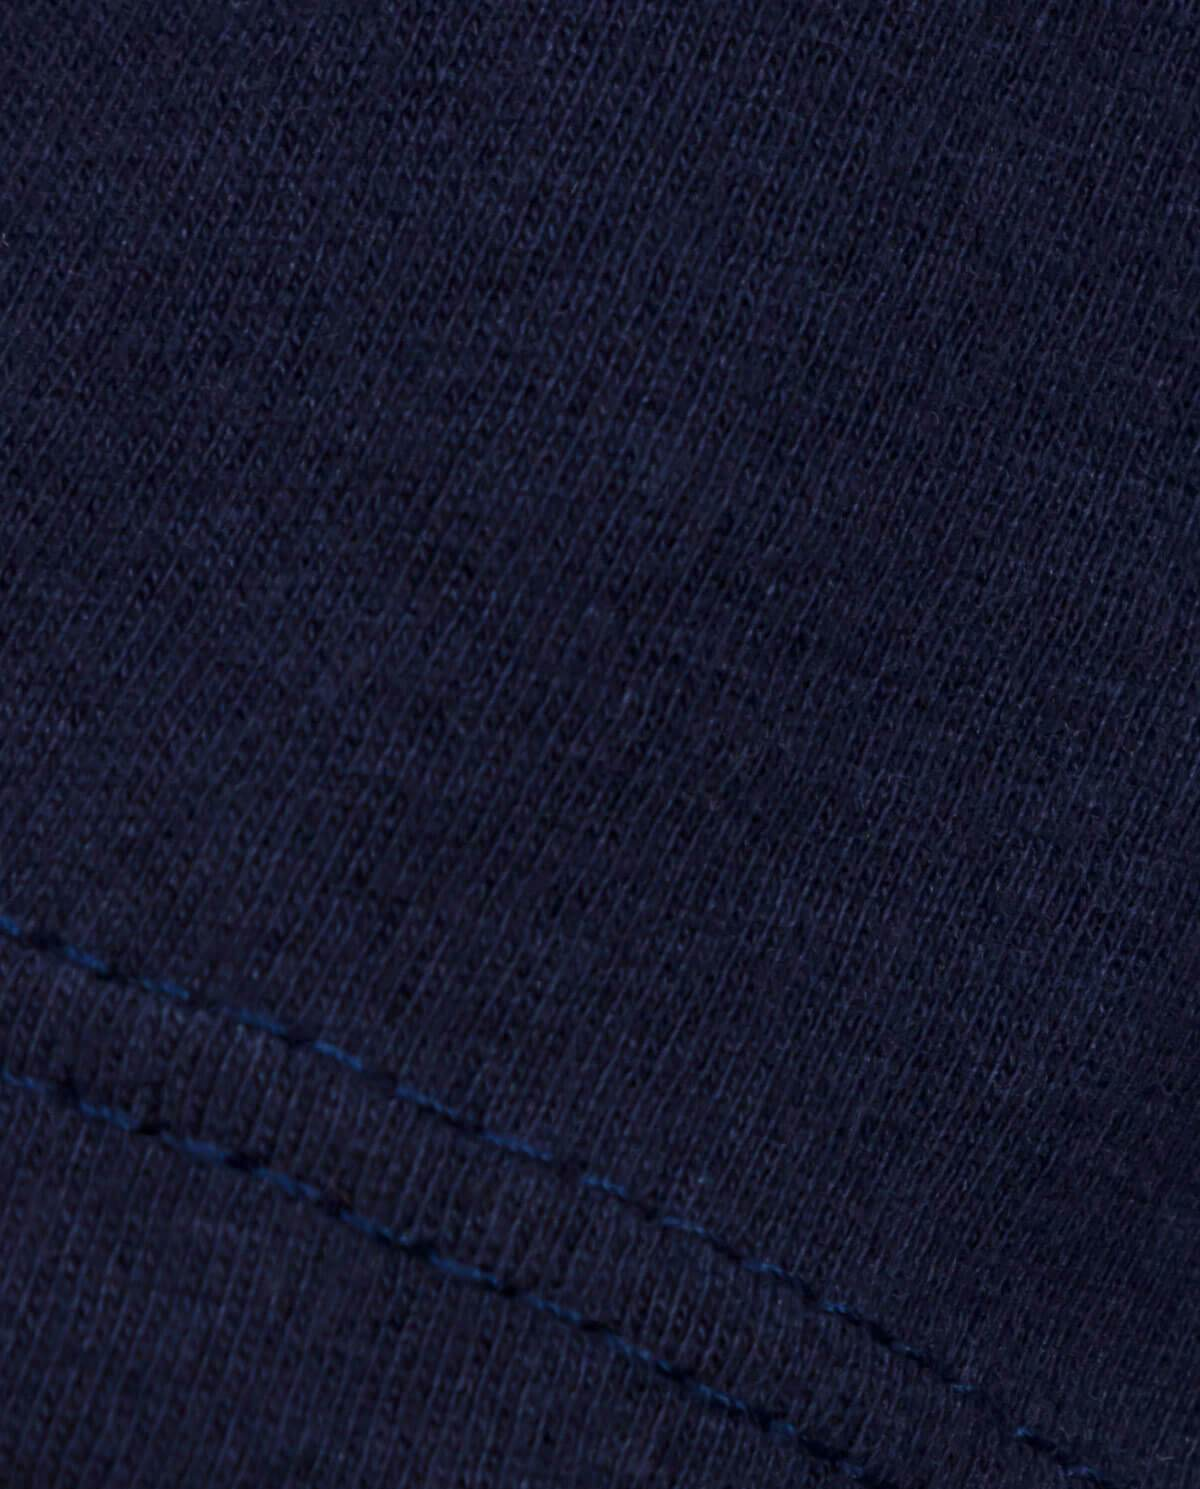 Ahnako Women's Mountains - Midnight T-shirt - Fabric Close Up